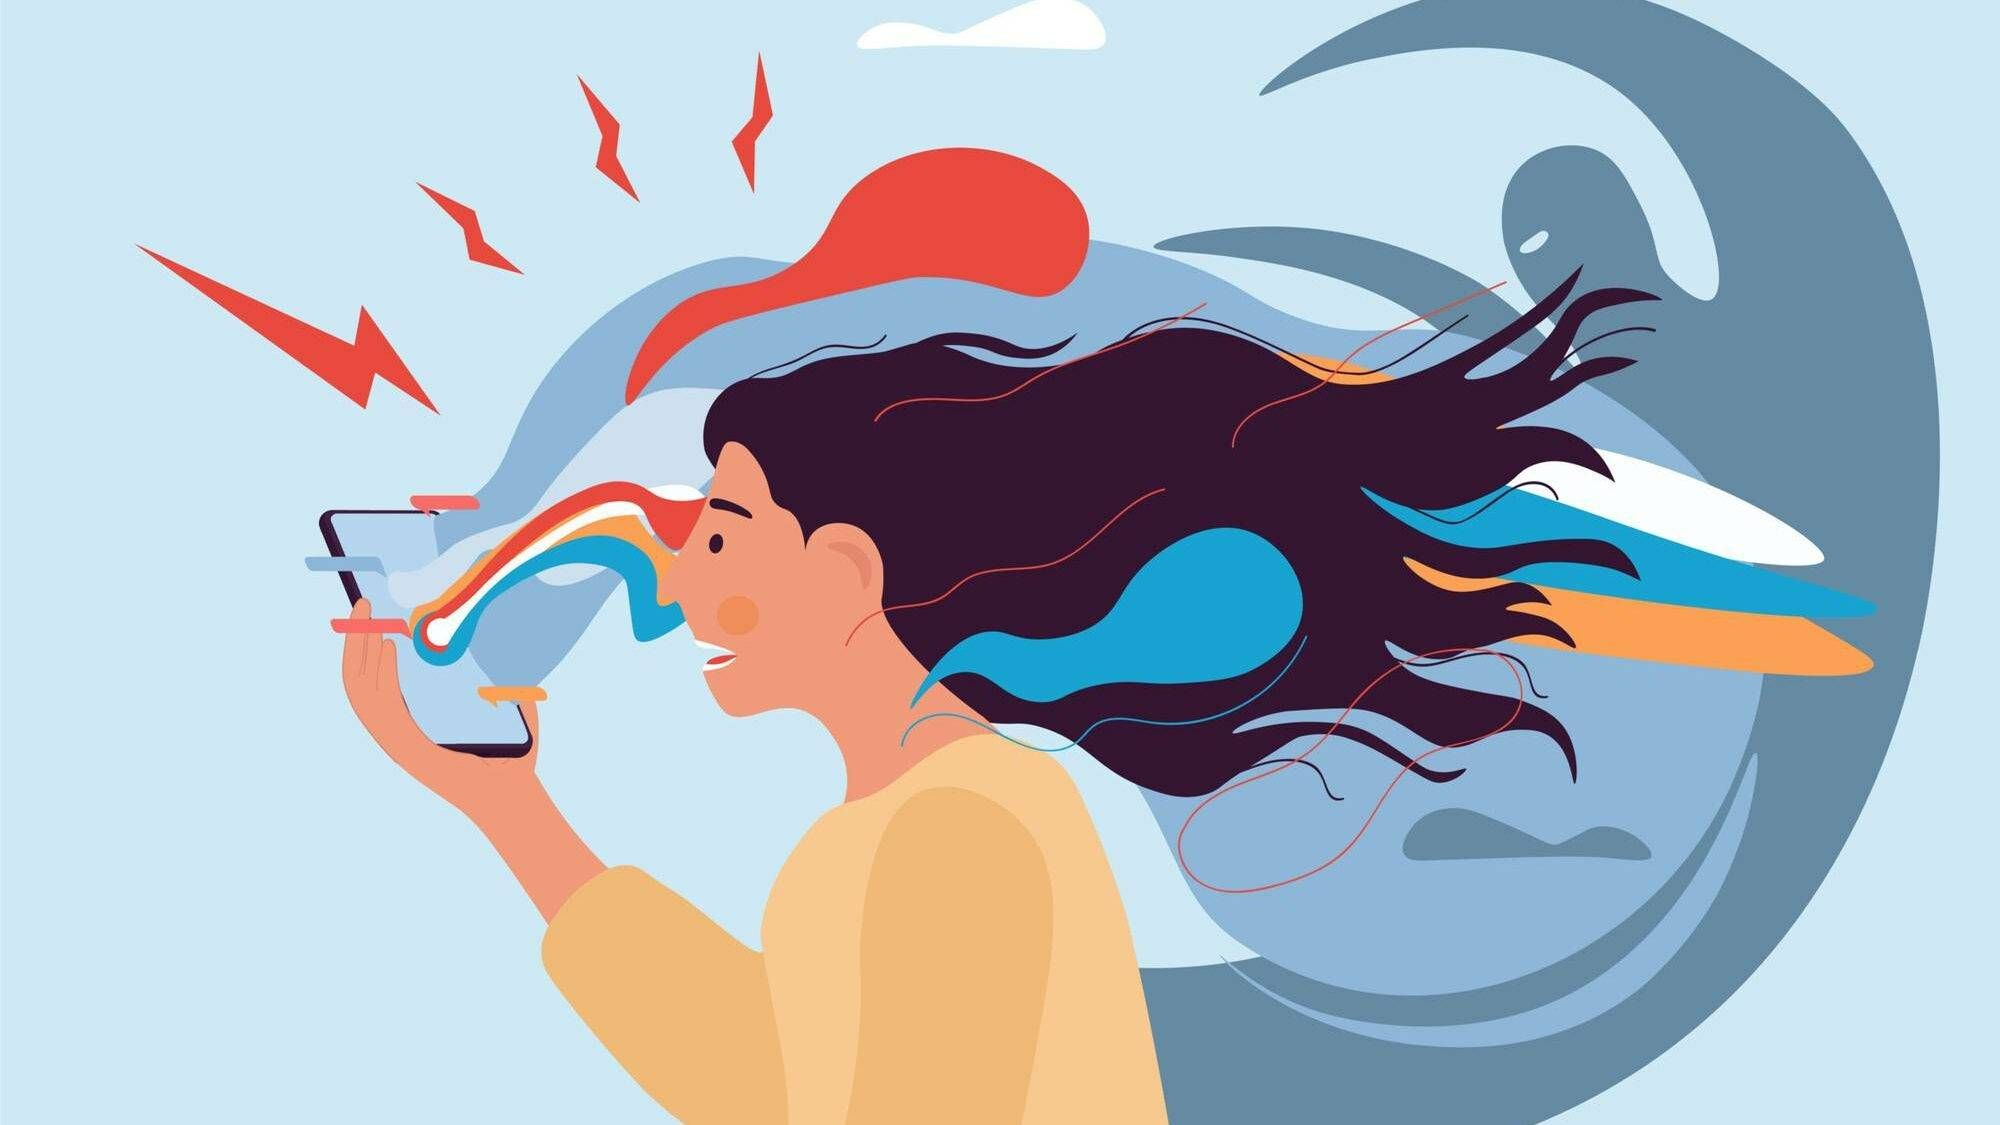 Illustration of anxious woman looking at phone surrounded by negative energy. REWIRE PBS our future media consumption, Rewire, media diet